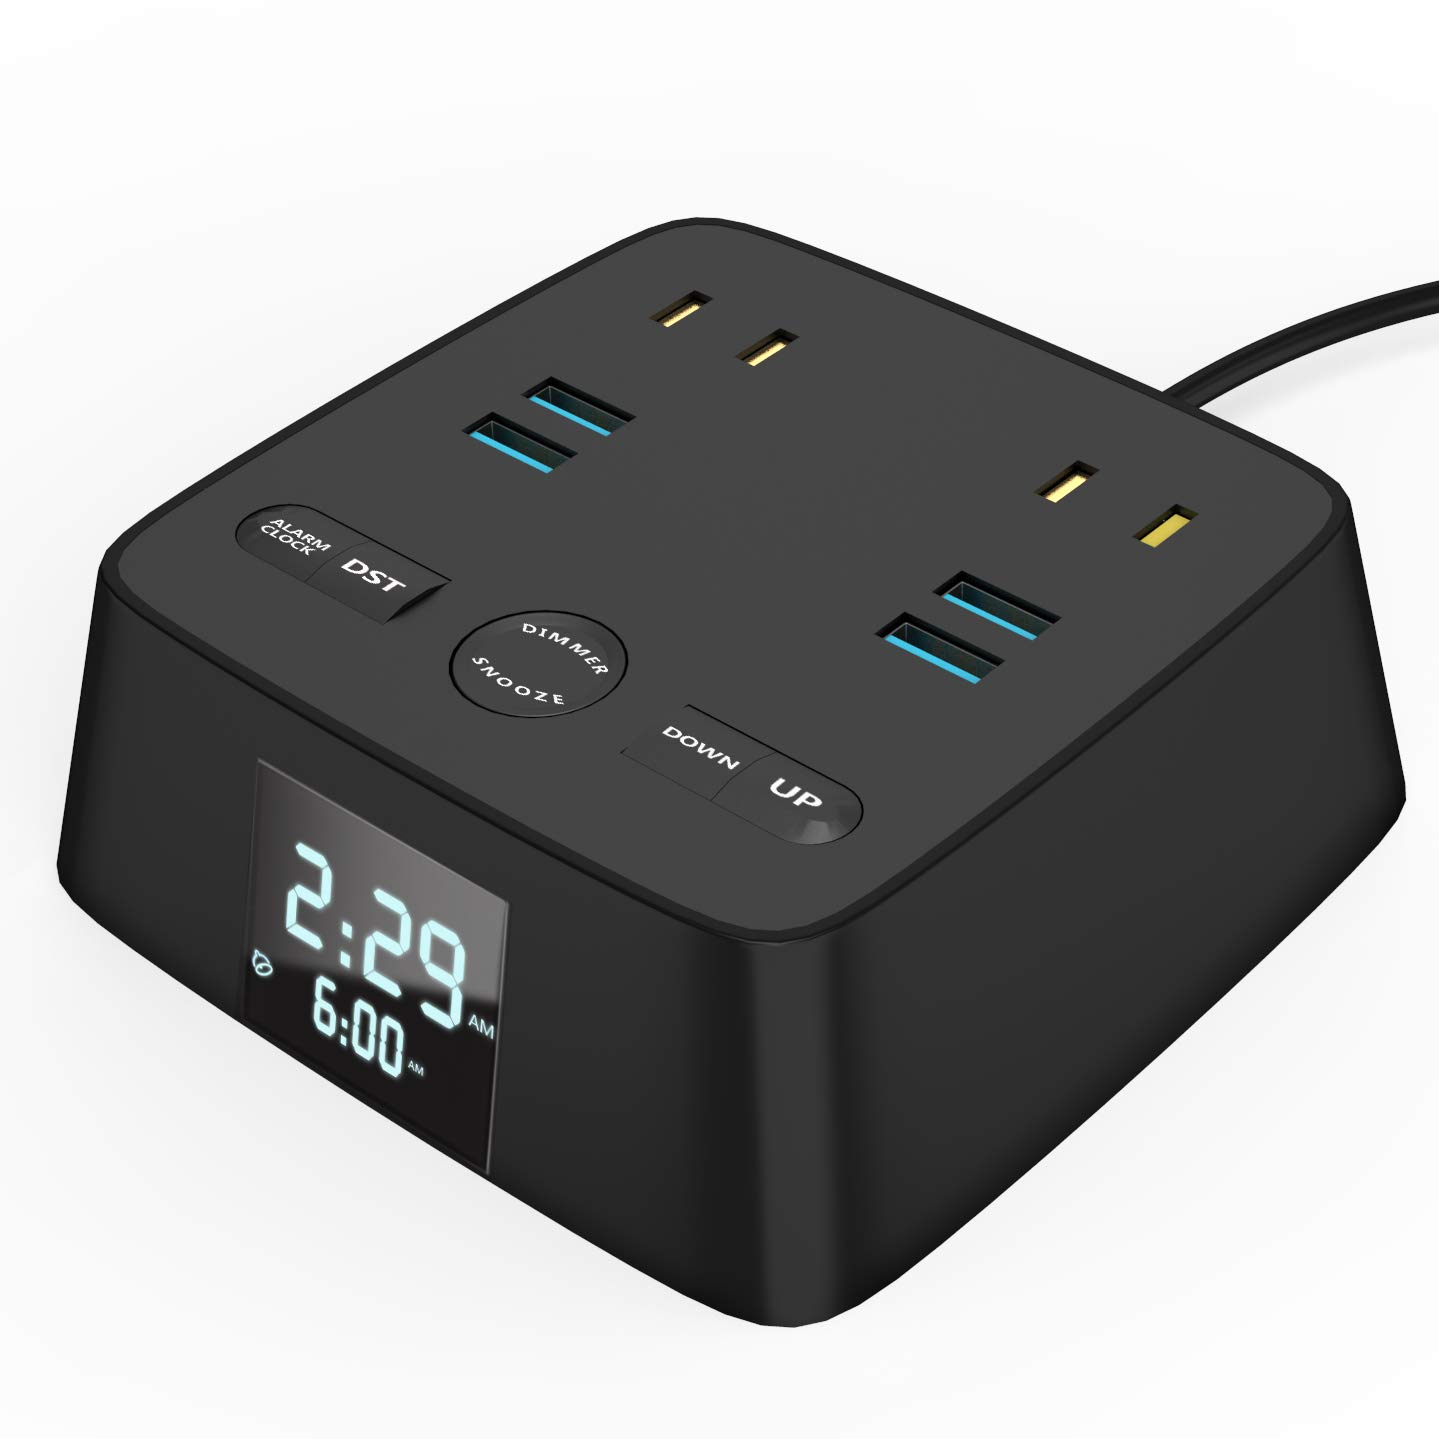 POWERAXIS Alarm Clock Charger Station, 4 Dimmer Setting, 4 USB Ports and 2 AC Outlets, with Dual Alarm and Snooze, Include Battery Backup, 6FT Prower Cord Suitable for Home Bedroom Office Hotel.